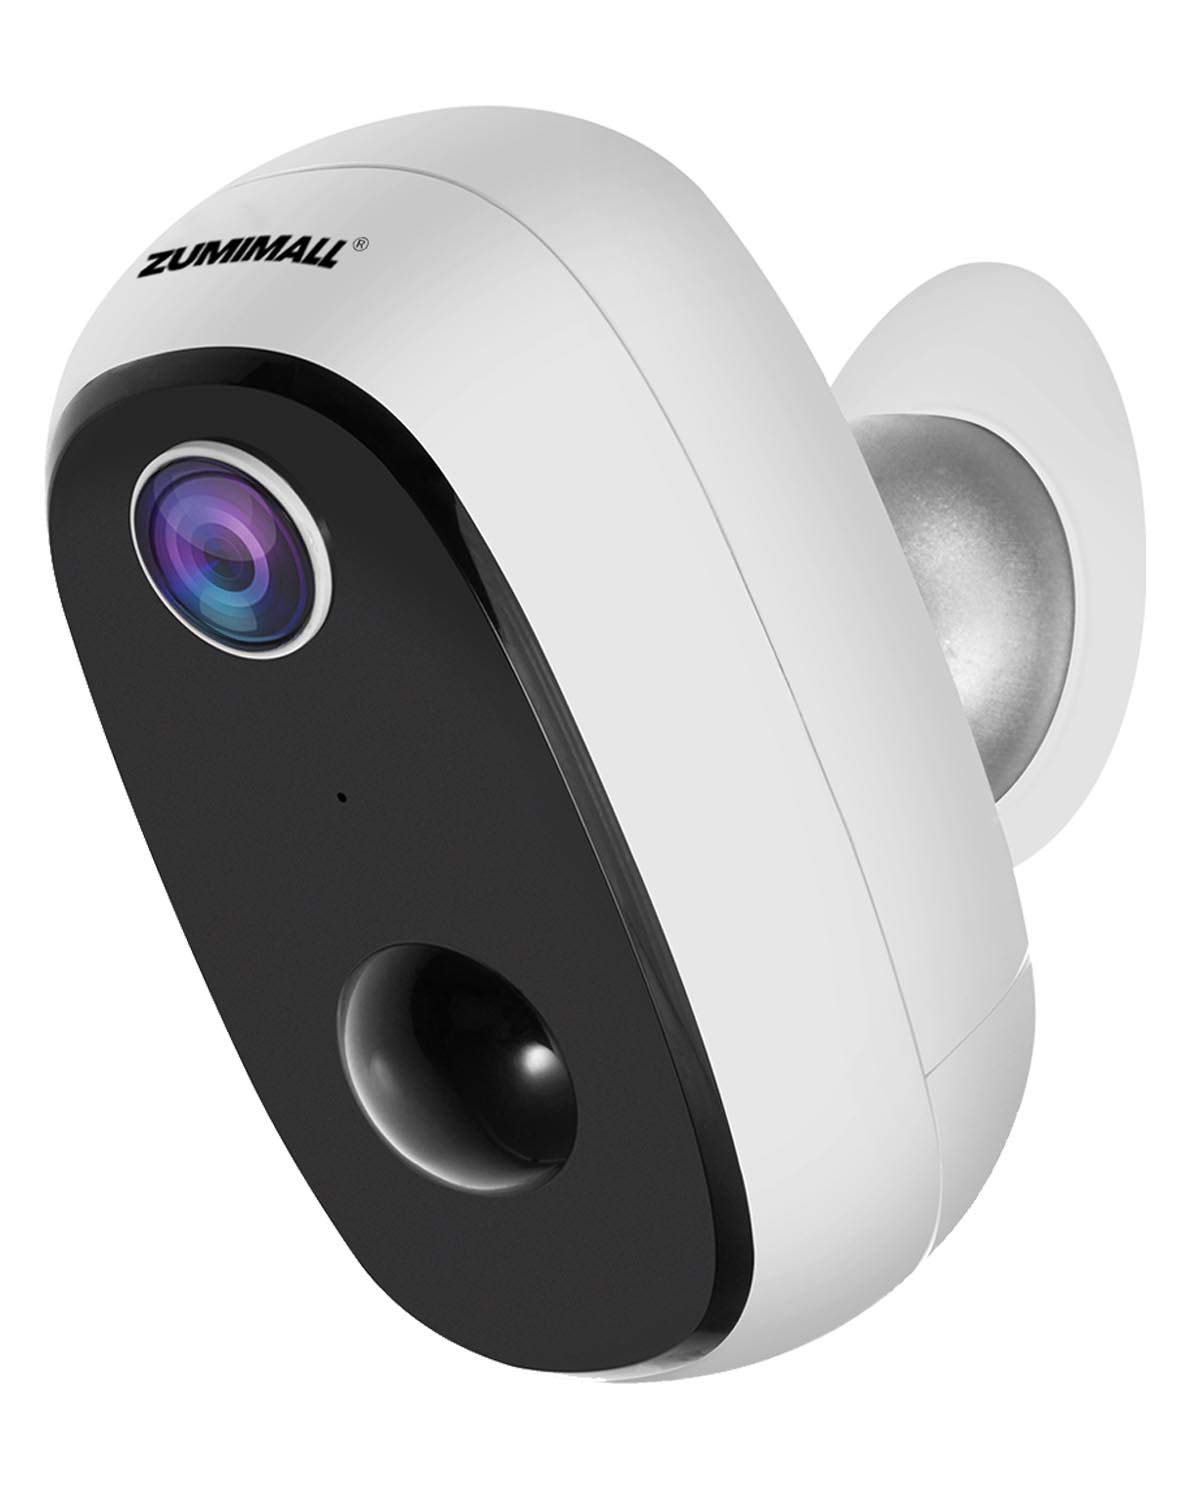 Wireless Security Camera Rechargeable Battery-Powered Home Cameras, Indoor/Outdoor WiFi Camera with 1080P Video, 2-Way Audio, Night Vision, Surveillance Camera with Motion Detection, Waterproof